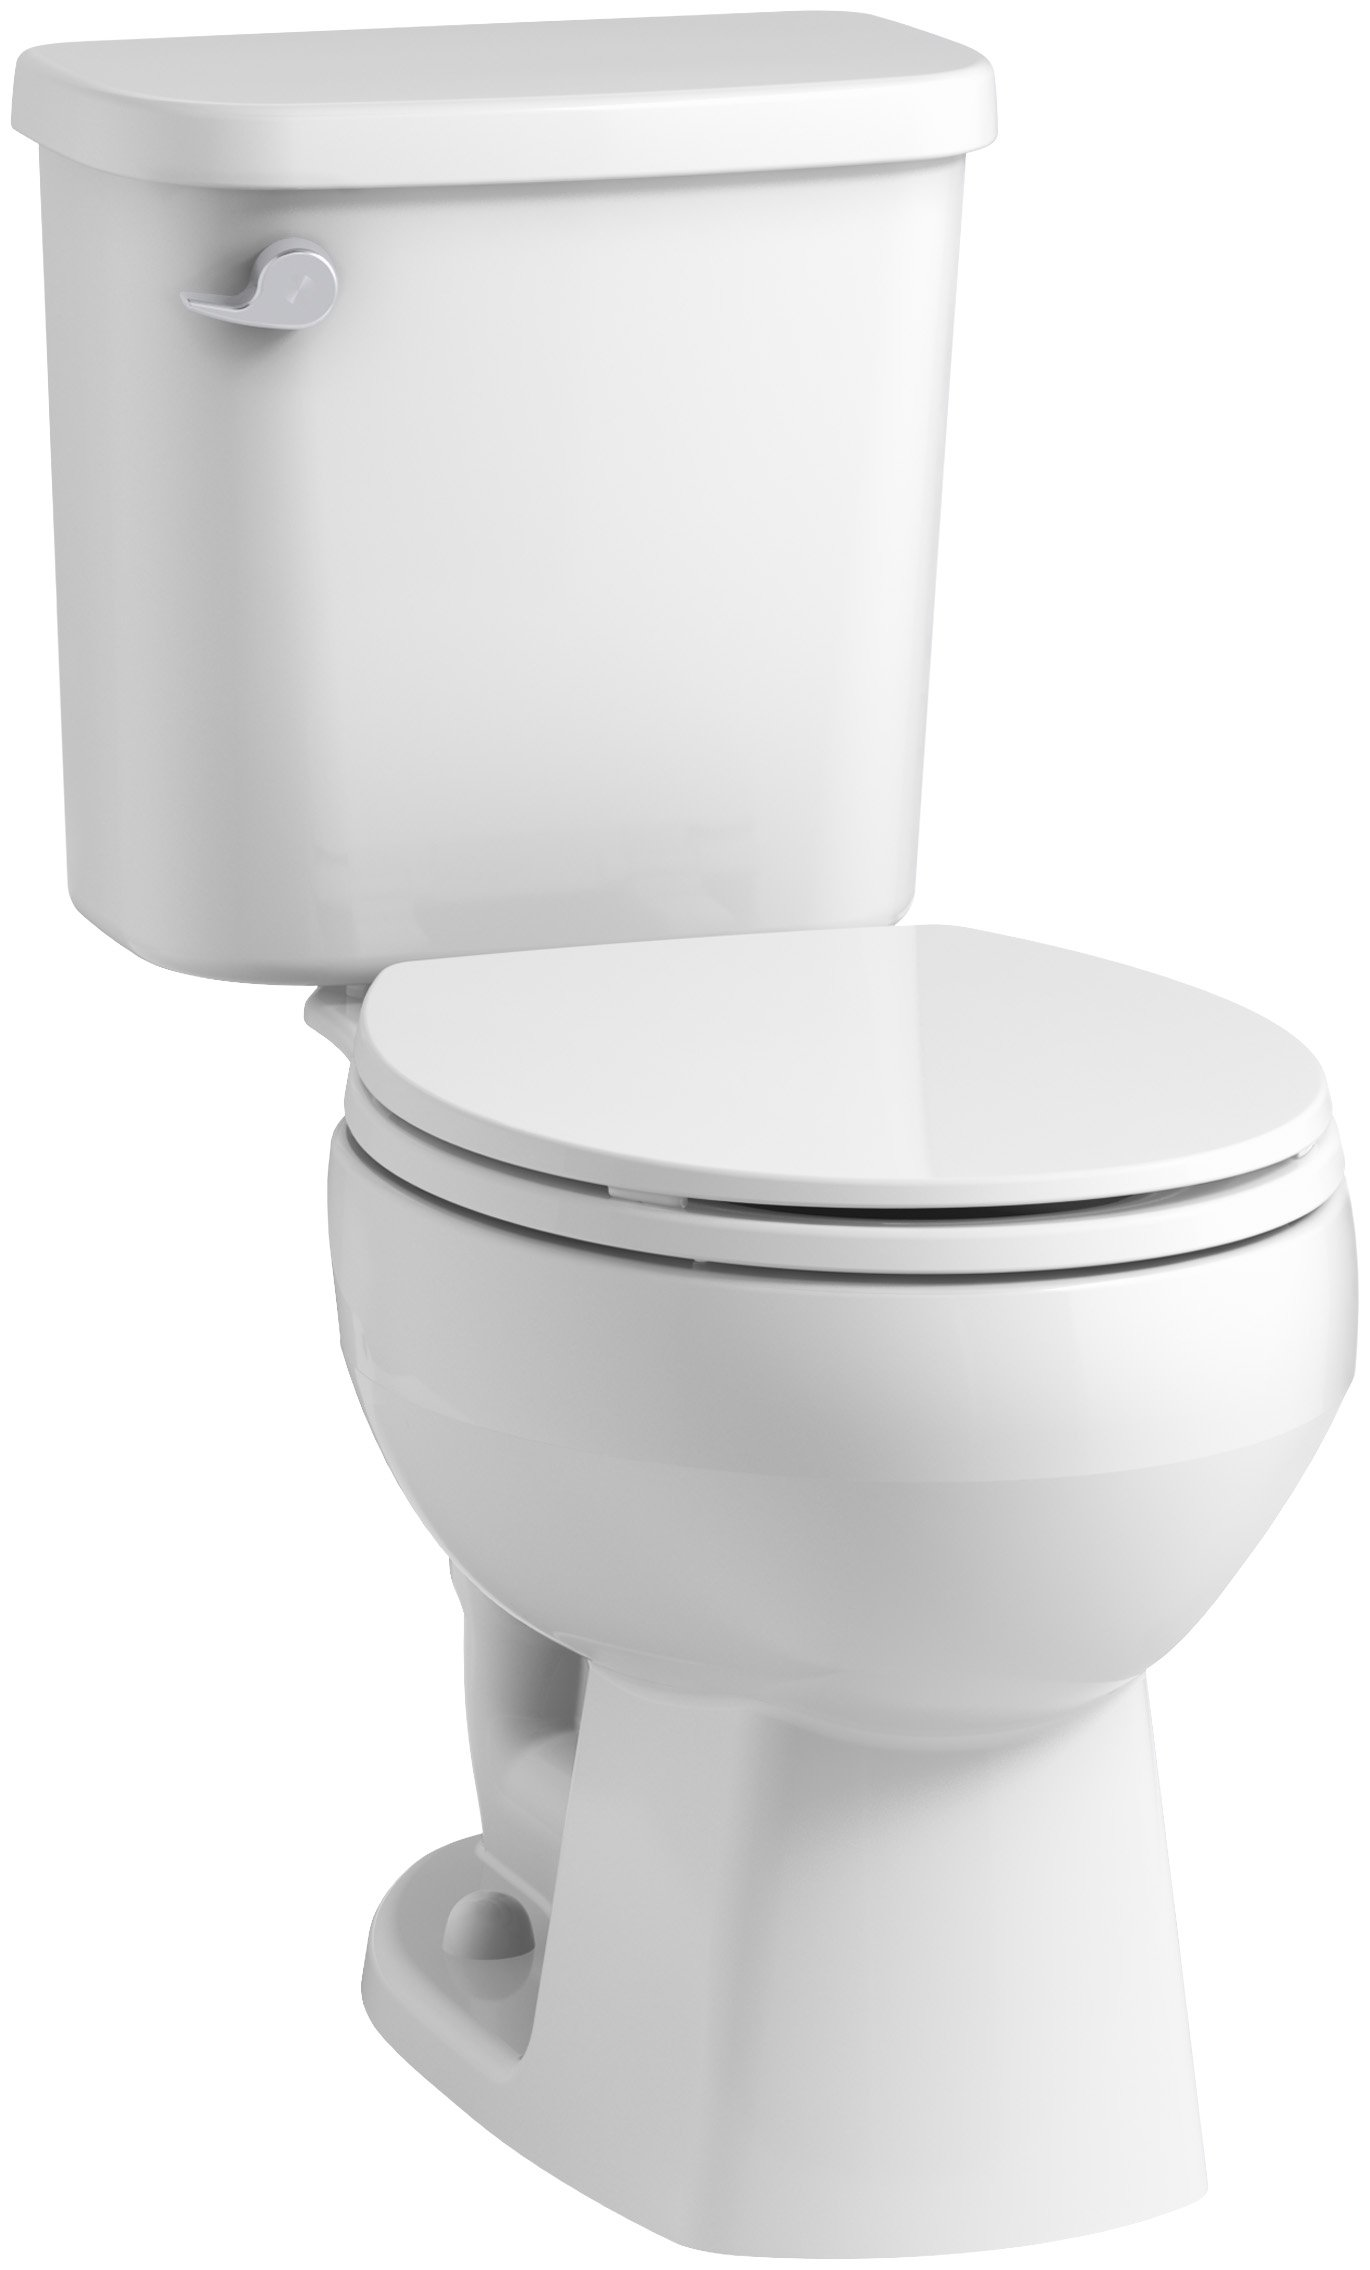 STERLING 403080-0 Windham 12 In. Rough-In Round Front Toilet with Pro Force Technology and Left-Hand Trip Lever, White